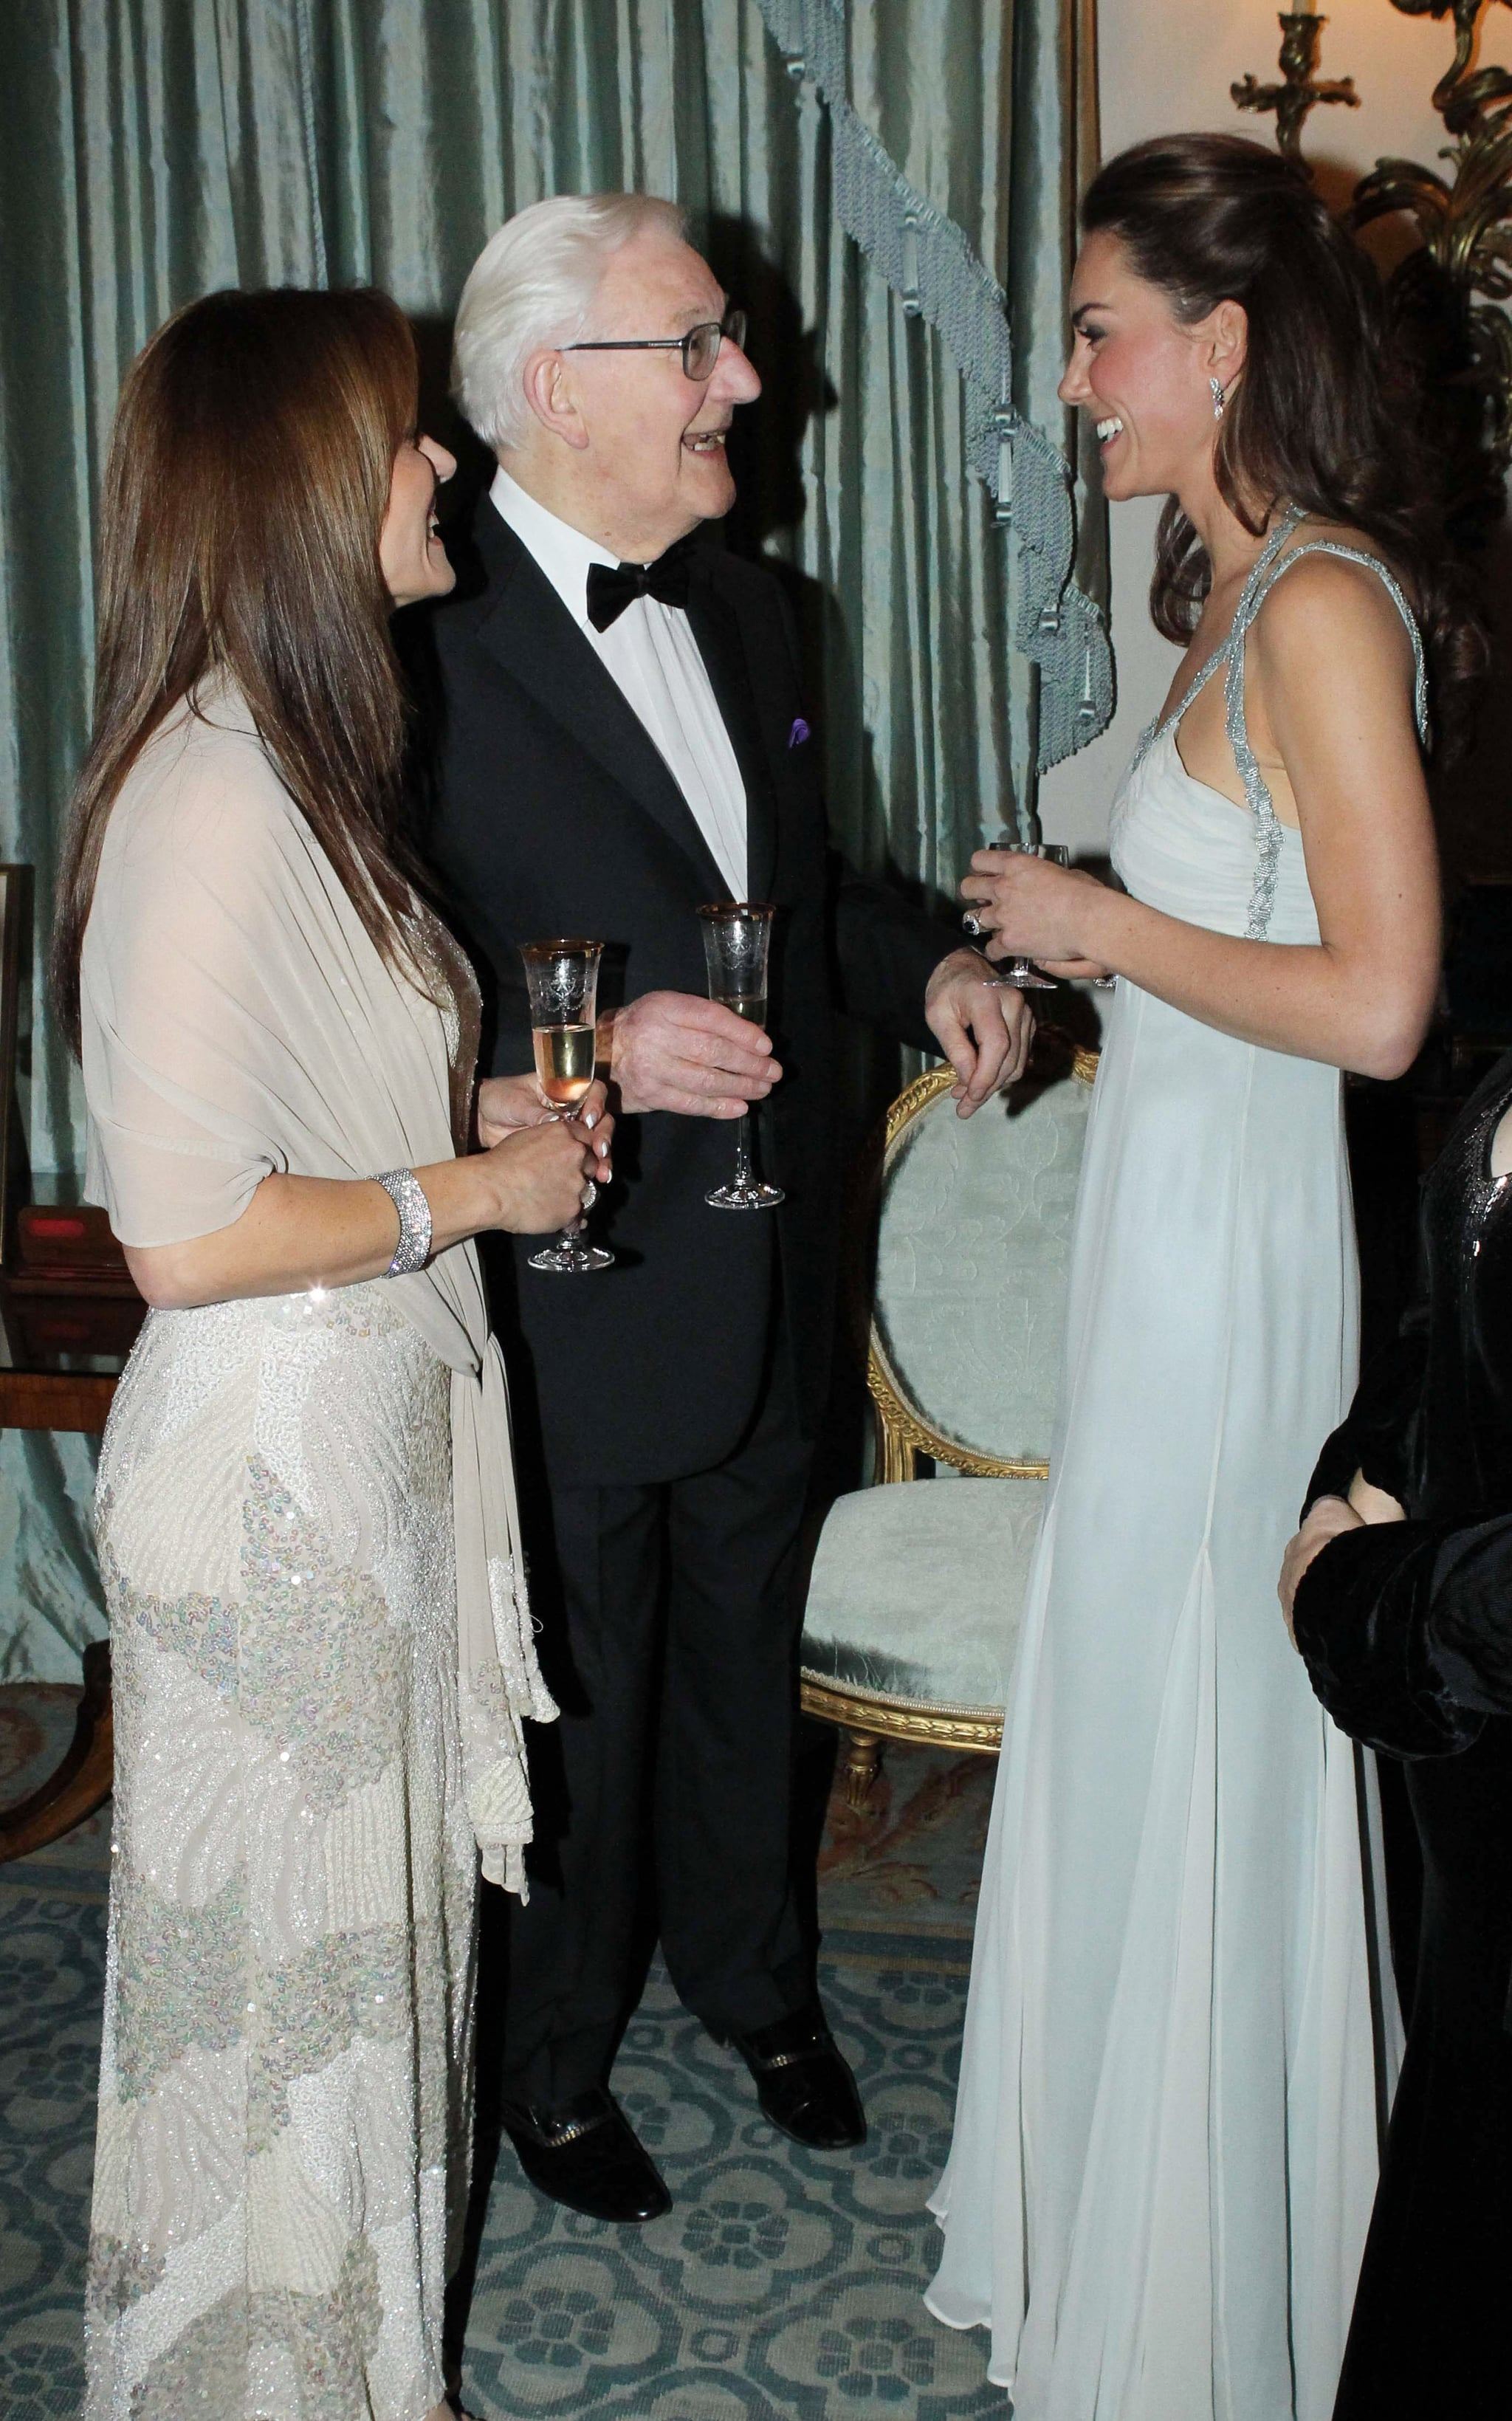 Kate Middleton at her first ever royal charity party!